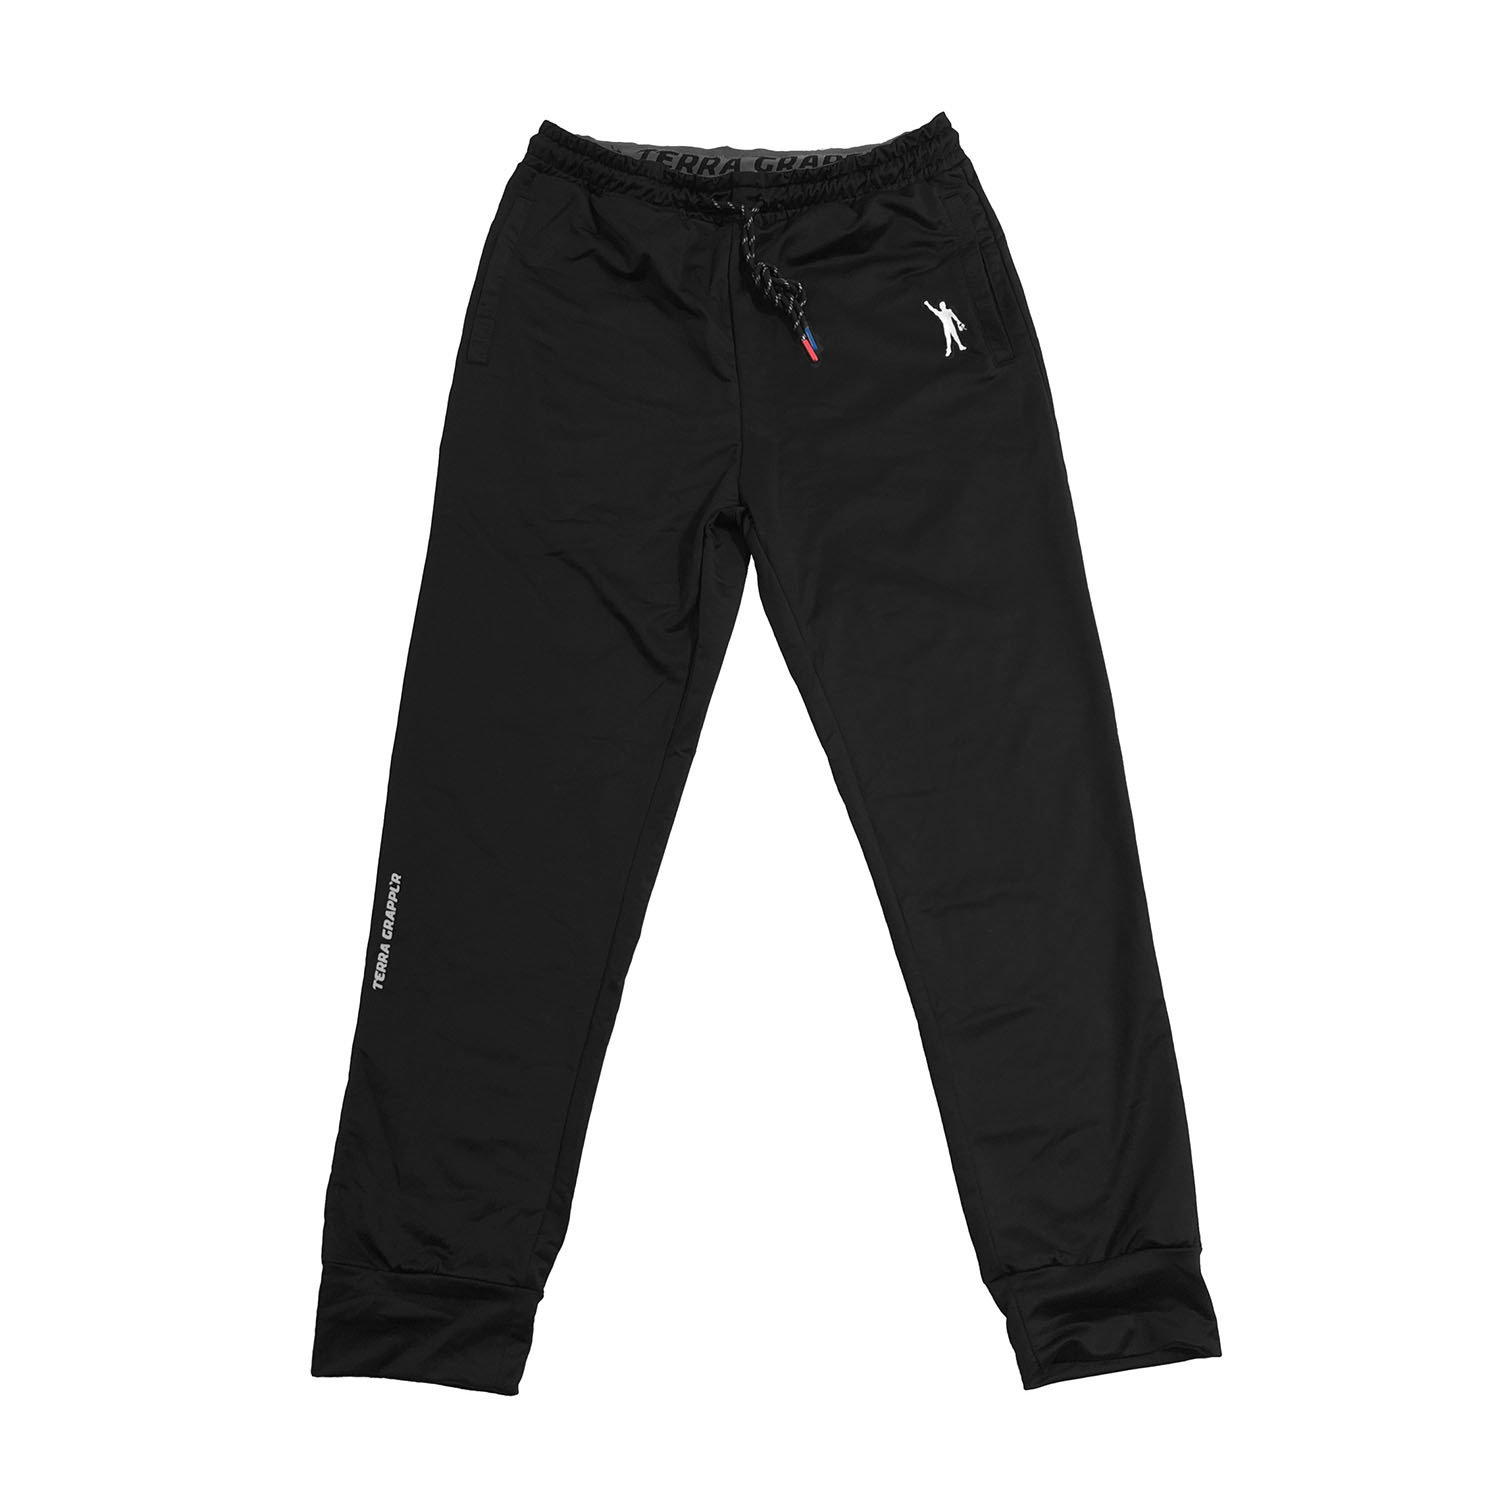 TG Pin Cancer Hybrid Jogg'r joggr